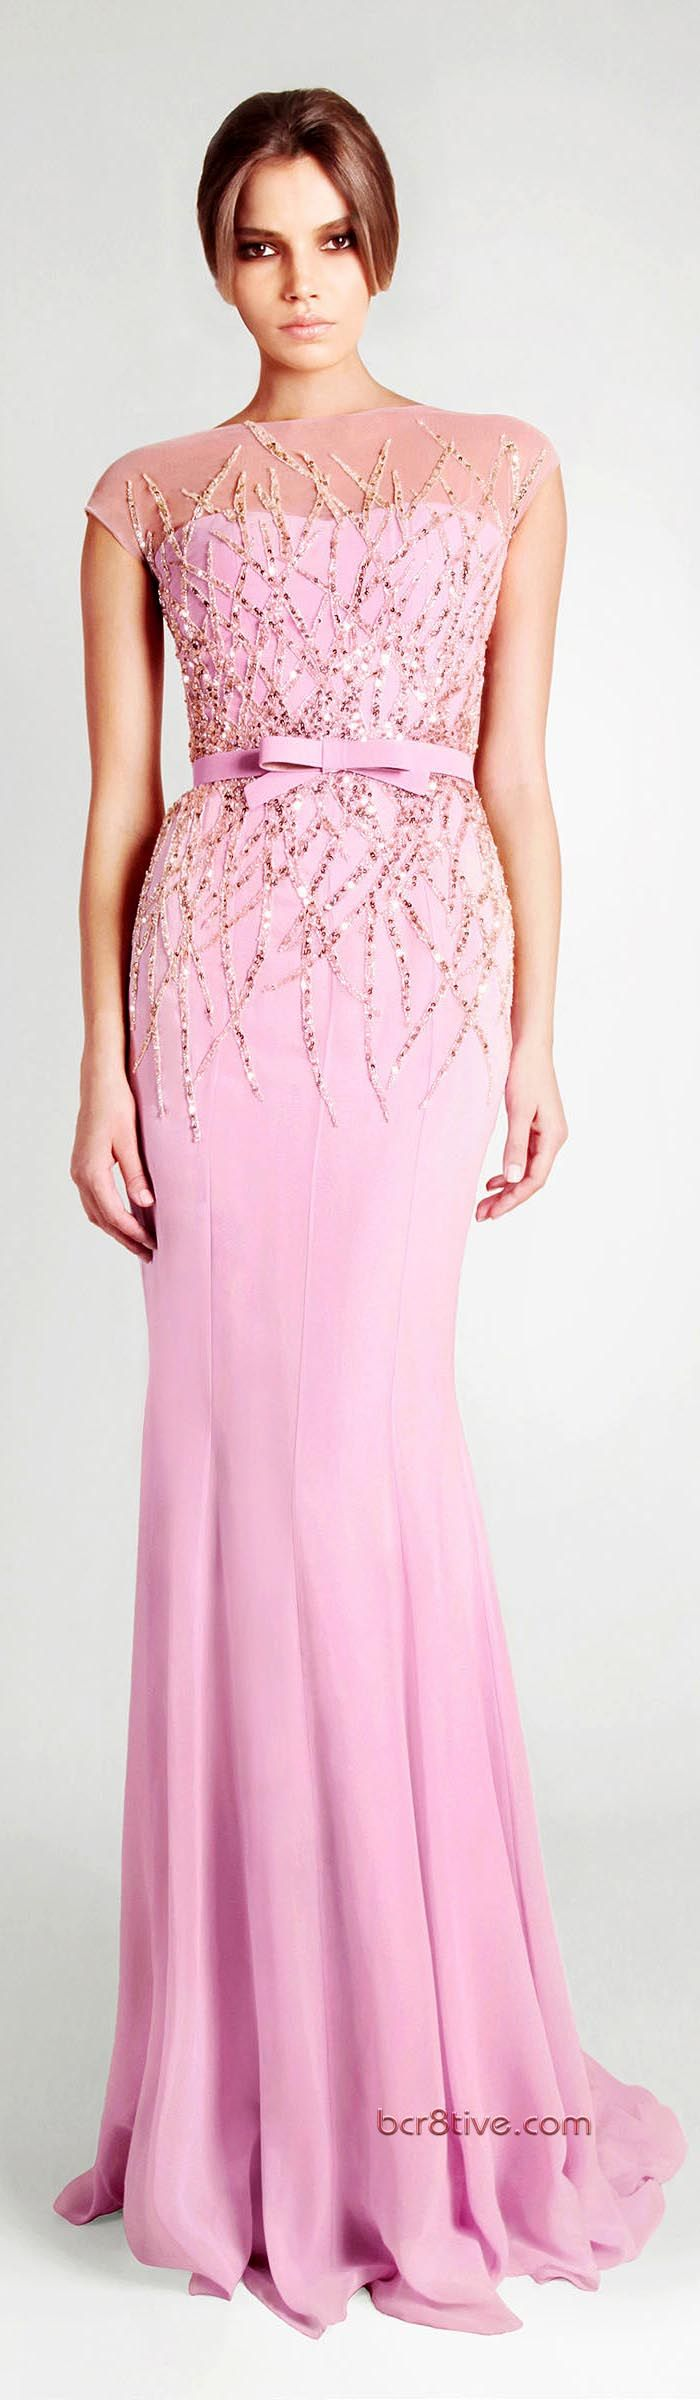 #Georges Hobeika Ready to Wear Signature Spring Summer 2013... this would be beautiful as a bridesmaid dress!